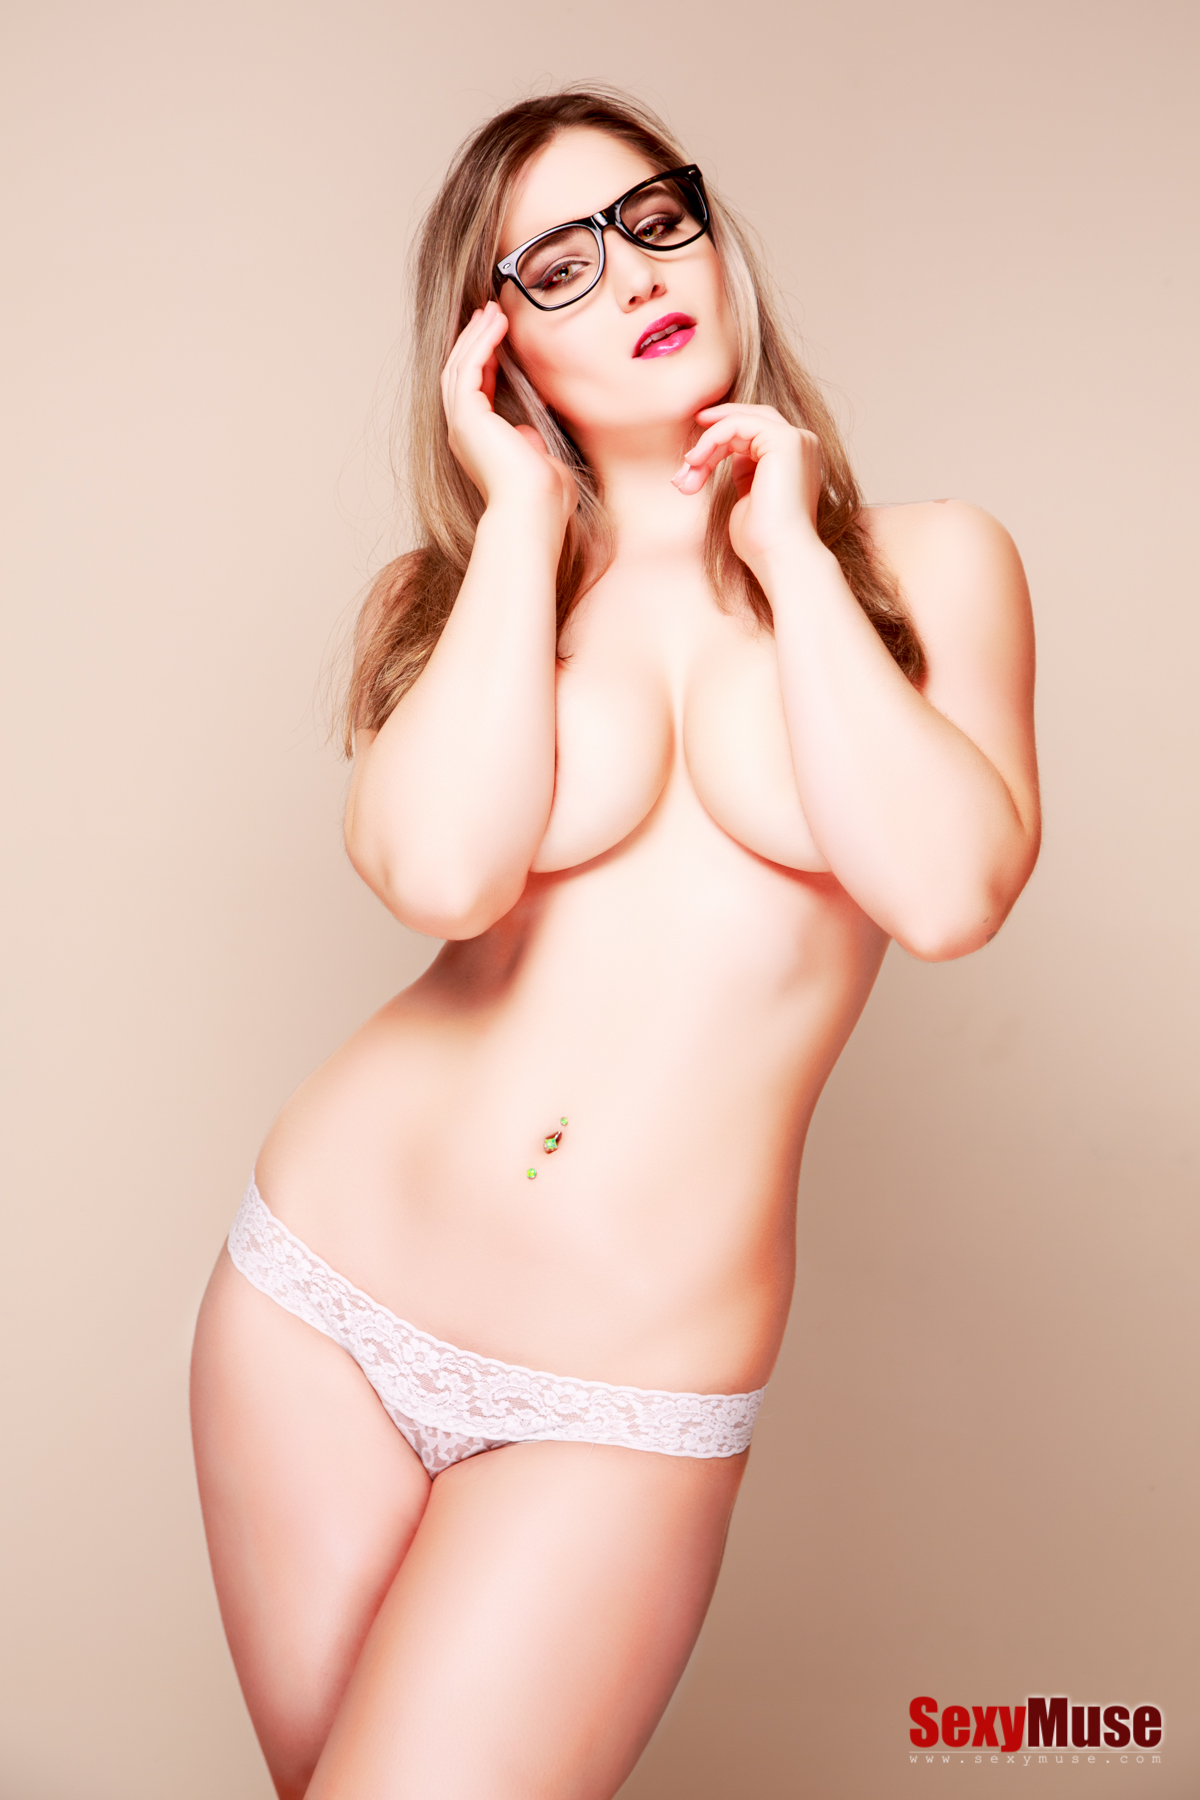 SexyMuse by Rocke Andrea 04202015 1